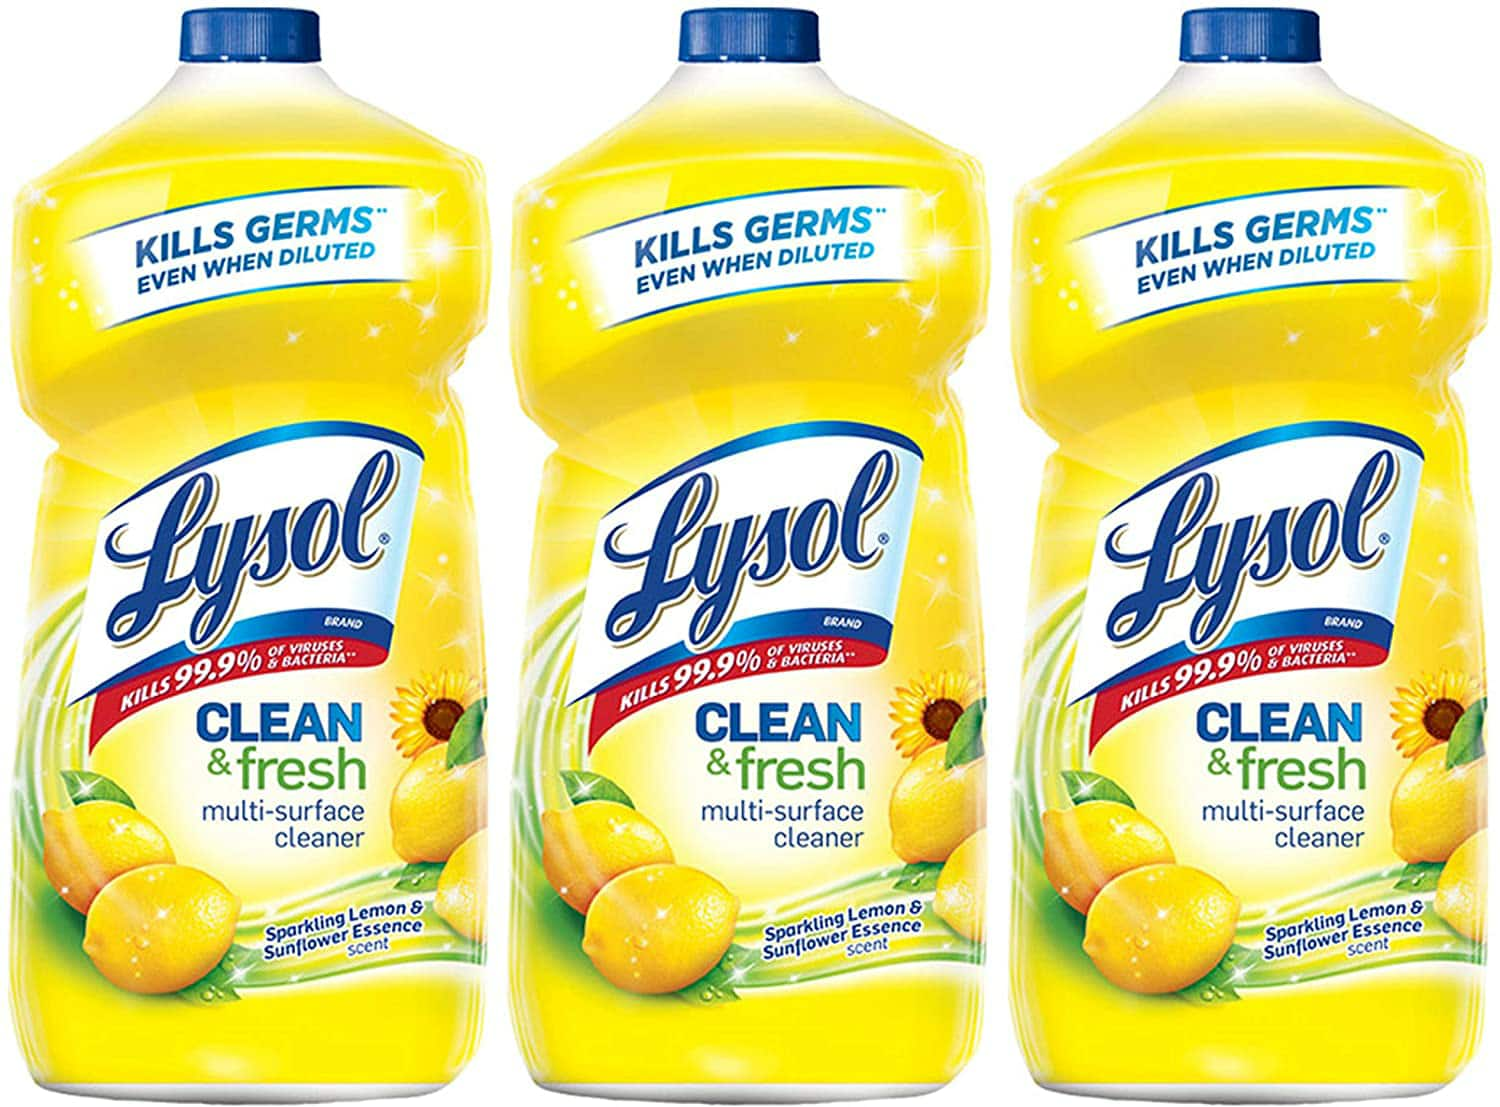 Amazon.com: Lysol Clean and Fresh Multi-Surface Cleaner, Lemon and Sunflower, 40 Ounce (Pack of 3) for $8.97